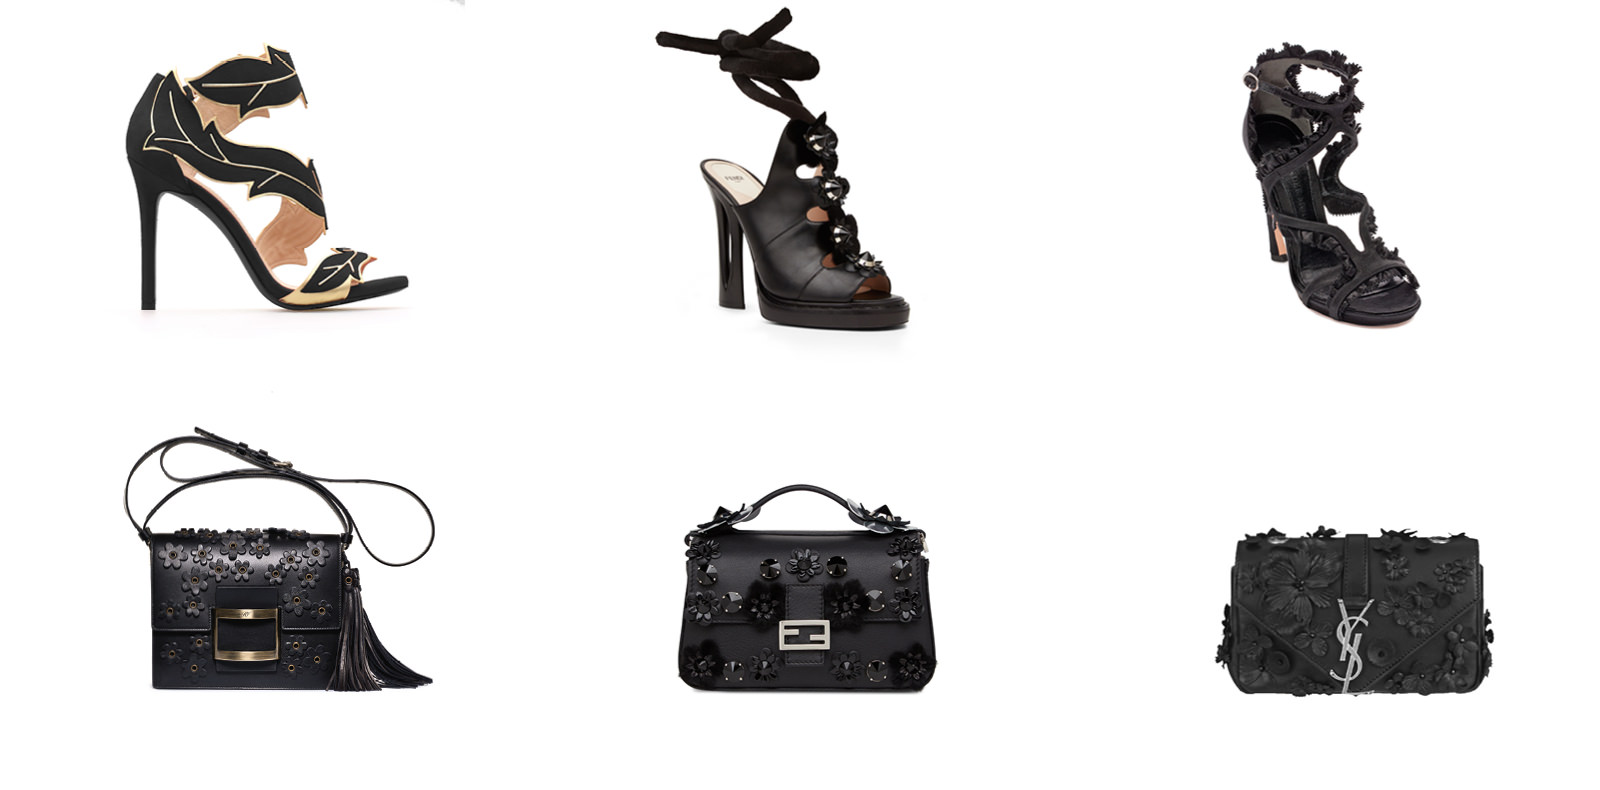 """Top:  Suede calfskin sandal, STELLA LUNA. Leather sandal with embroidered furflowers, FENDI. Leather sandal, MCQUEEN.  Bottom: """"Viv'Flowers""""leather bag, ROGER VIVIER. """"Double Baguette"""" leather bag with embroidered flowers, FENDI. """"Monogramme Baby Chain""""leather bag with embroidered flowers, SAINT LAURENT.  Selection by Rebecca Bleynie."""